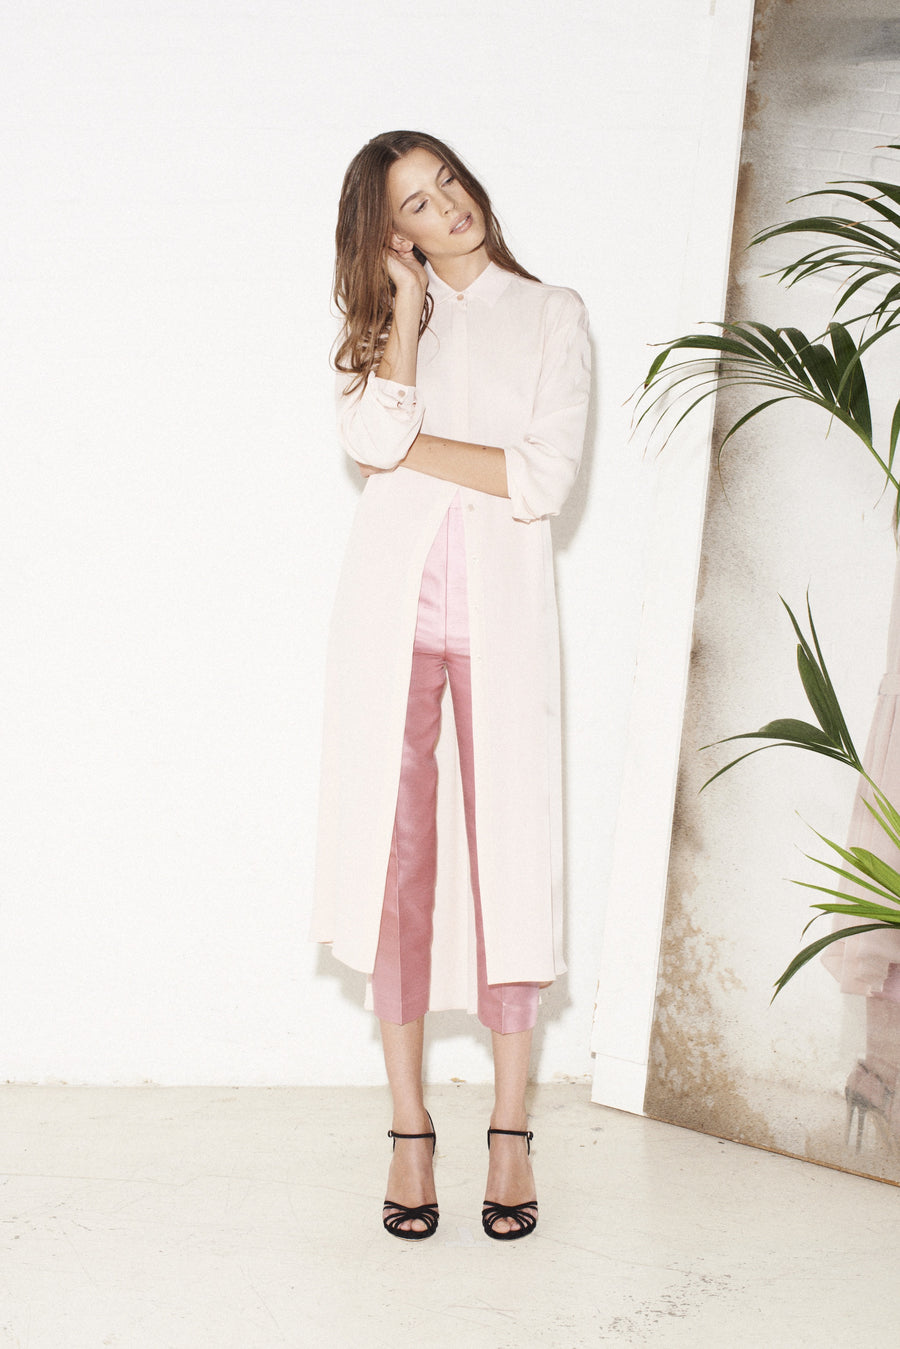 SS2013 / Look 11